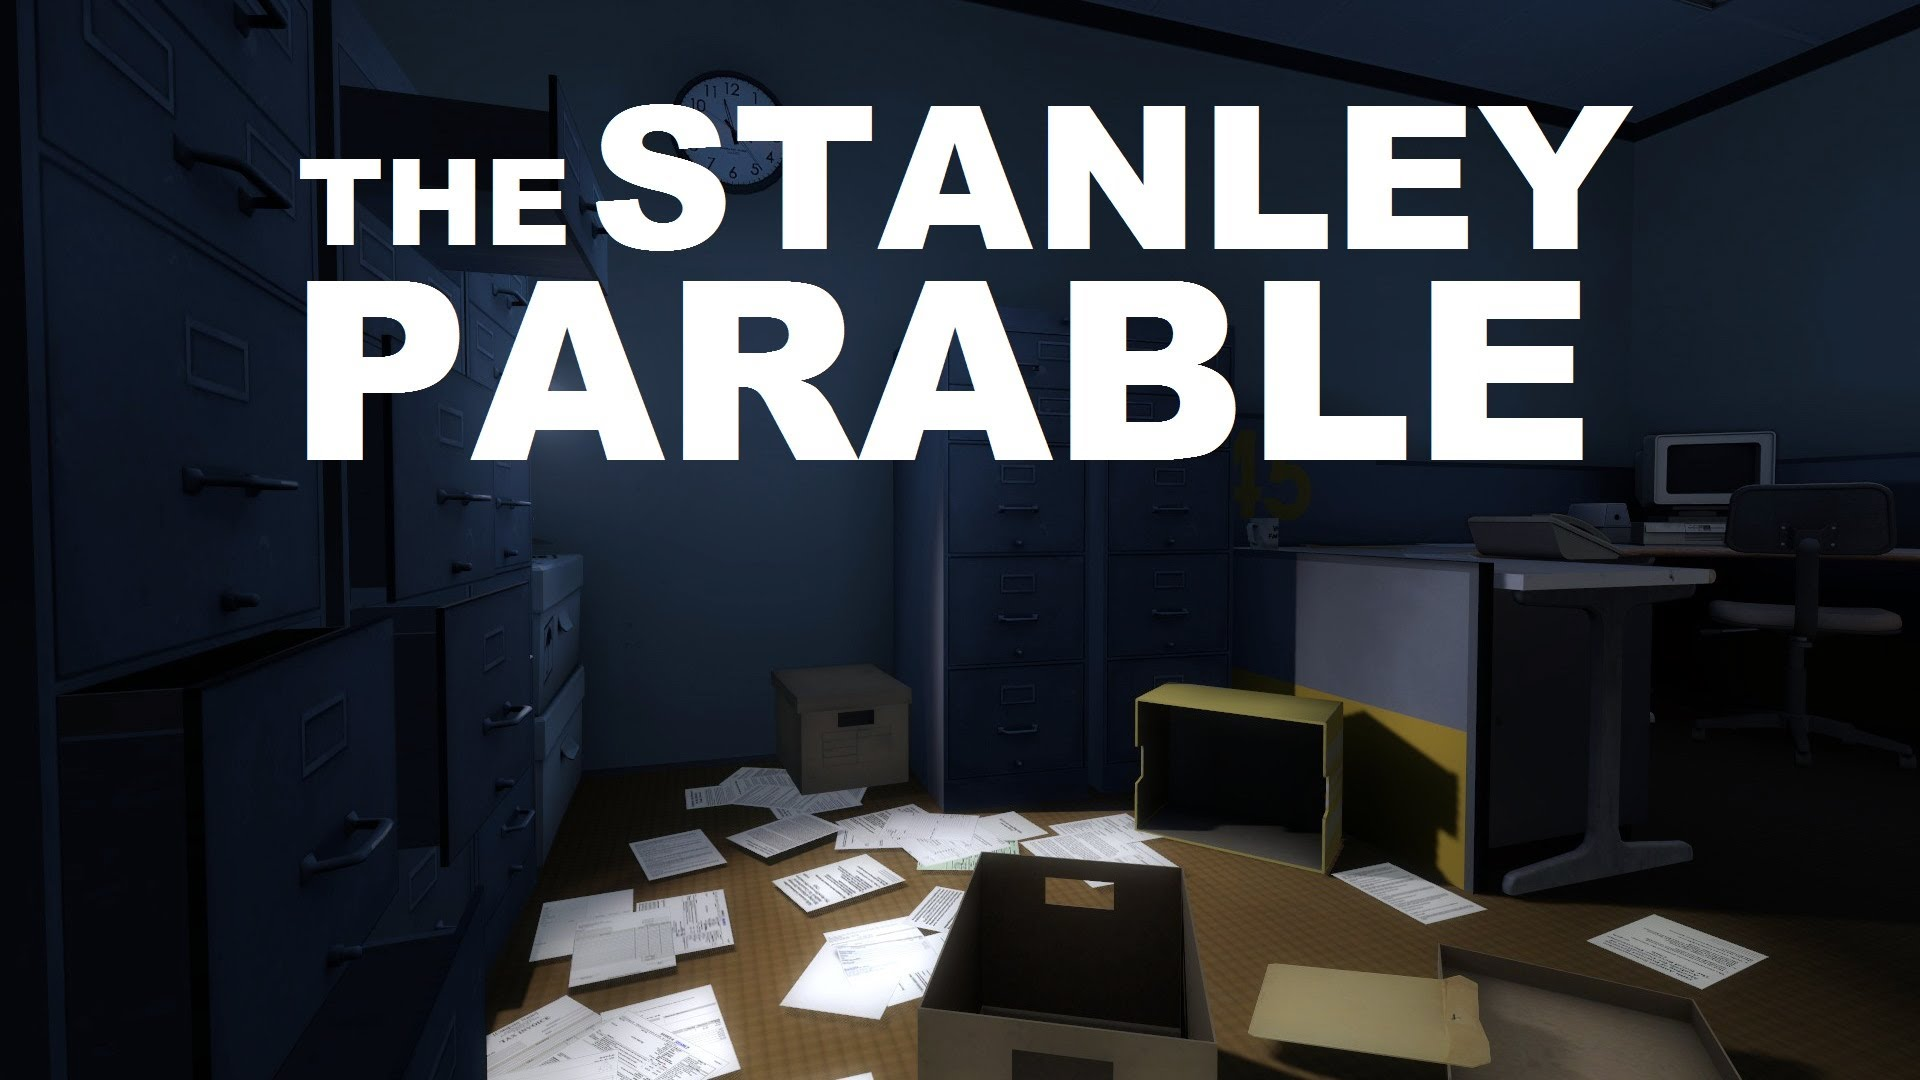 The Stnaley Parable